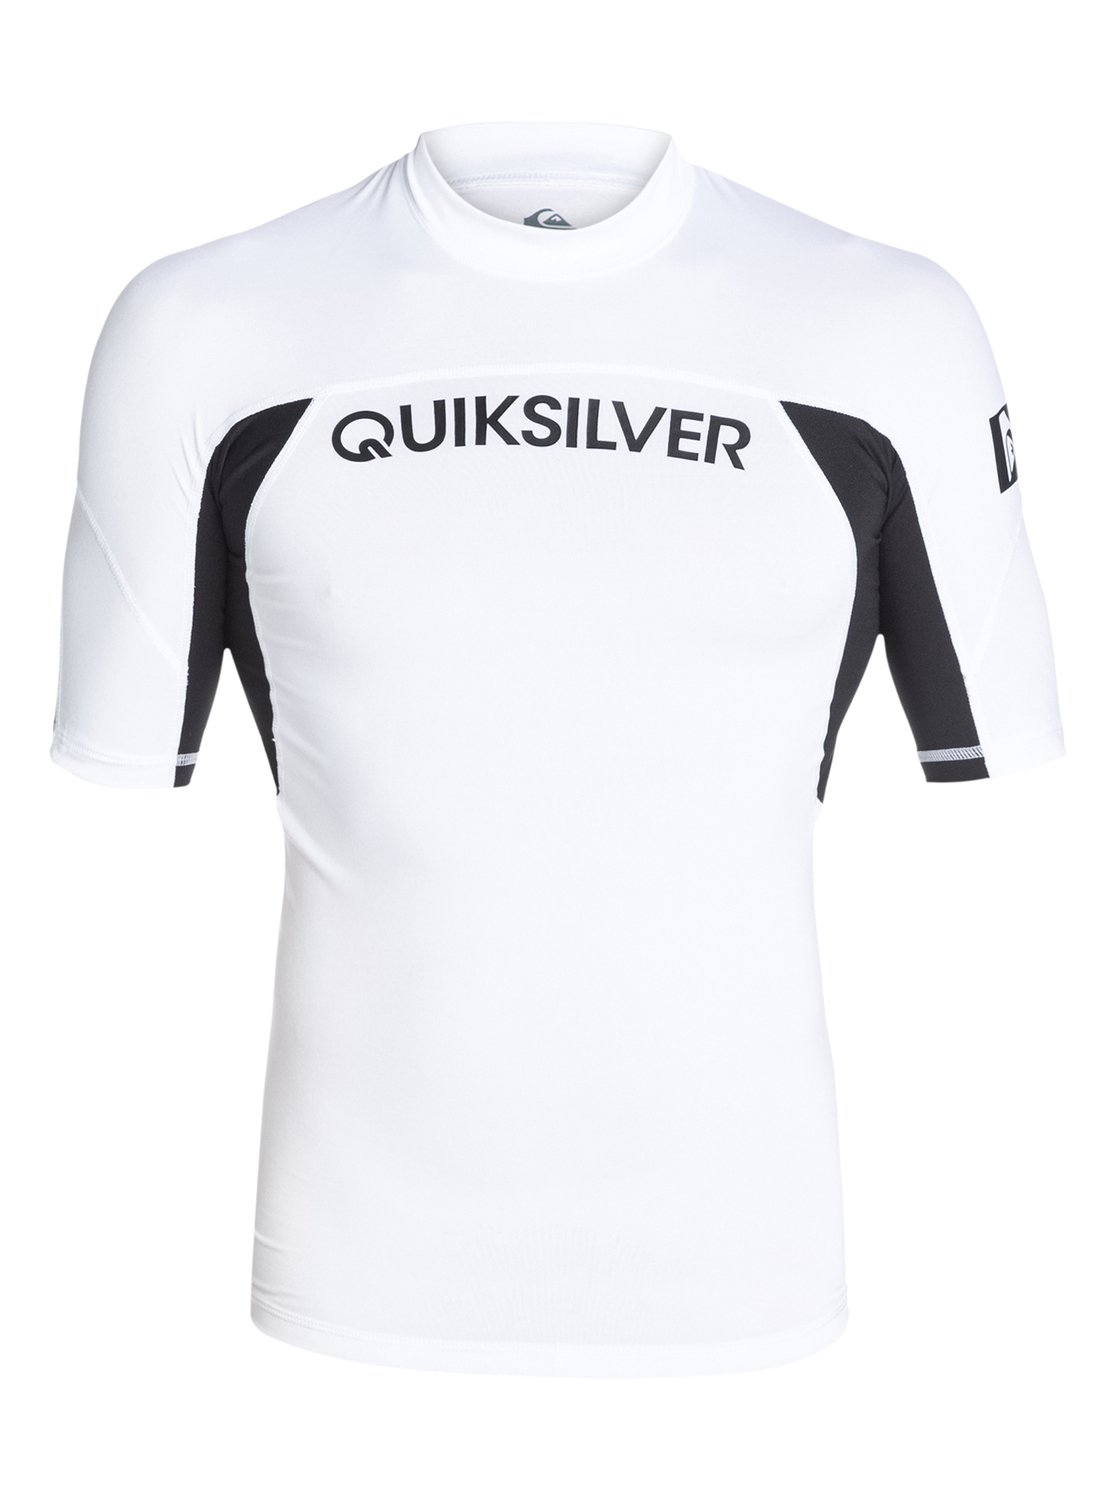 http://static.quiksilver.com/www/store.quiksilver.eu/html/images/catalogs/global/quiksilver-products/all/default/hi-res/aqywr03002_performerss,v_xwwk_frt1.jpg Quiksilver Surfboards